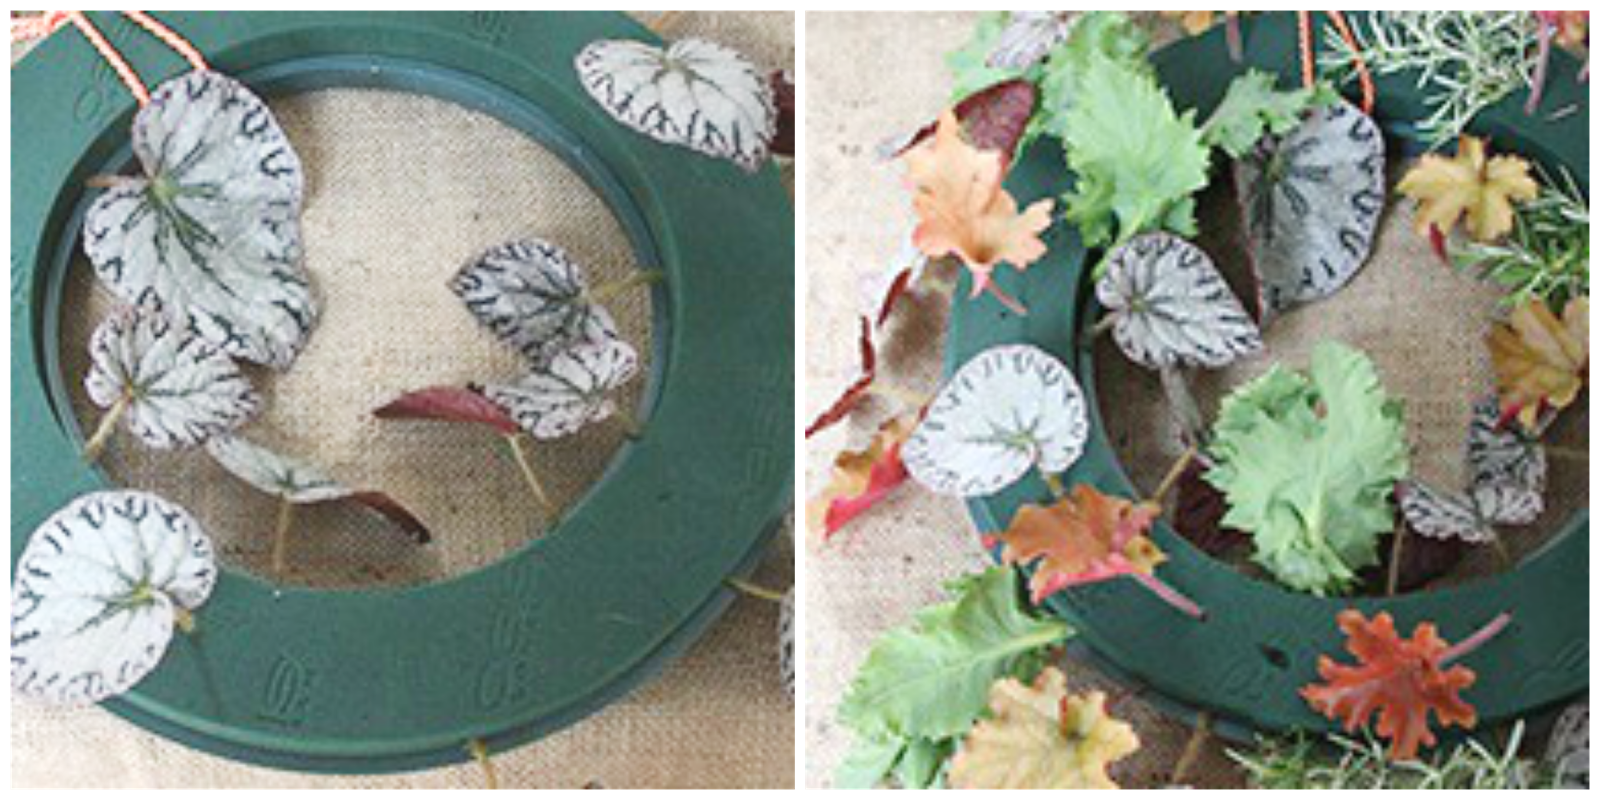 Ioanna's Notebook - DIY Floral Wreath - Step 2